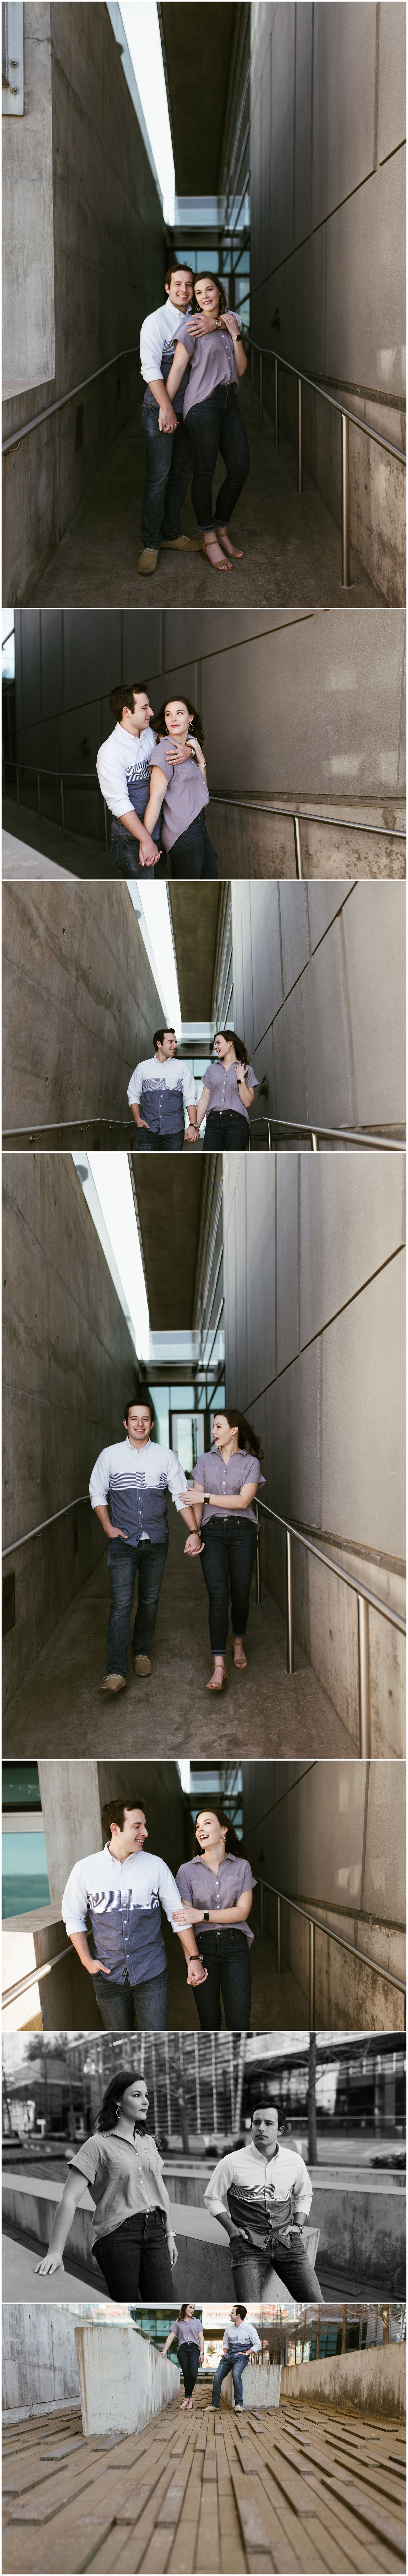 Downtown Fort Worth Engagement Session | Fort Worth Engagement Photographer | www.jordanmitchellphotography.com